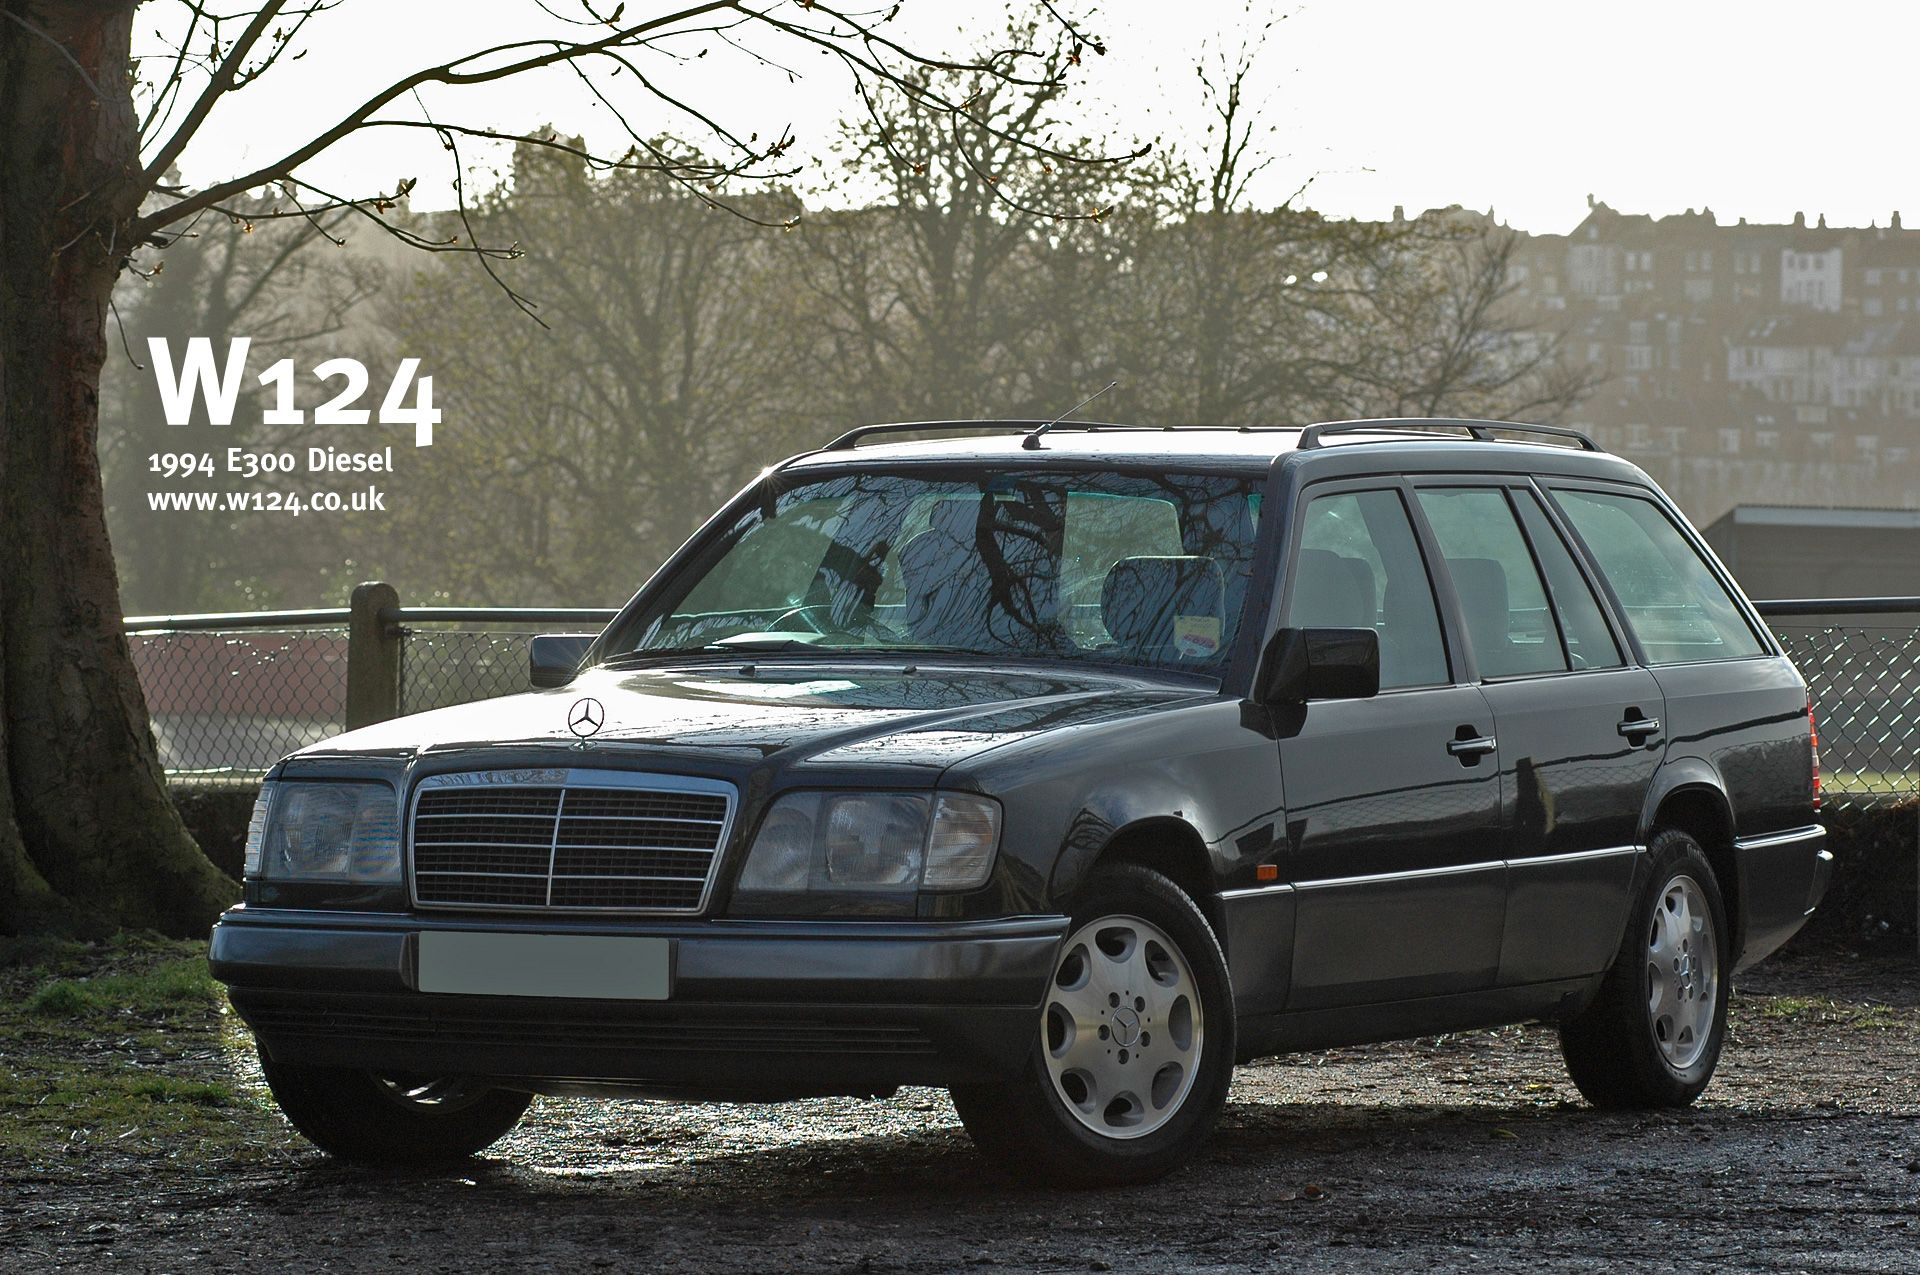 A 7 seater Mercedes W124 Estate | Cars to Seek Out in the UK